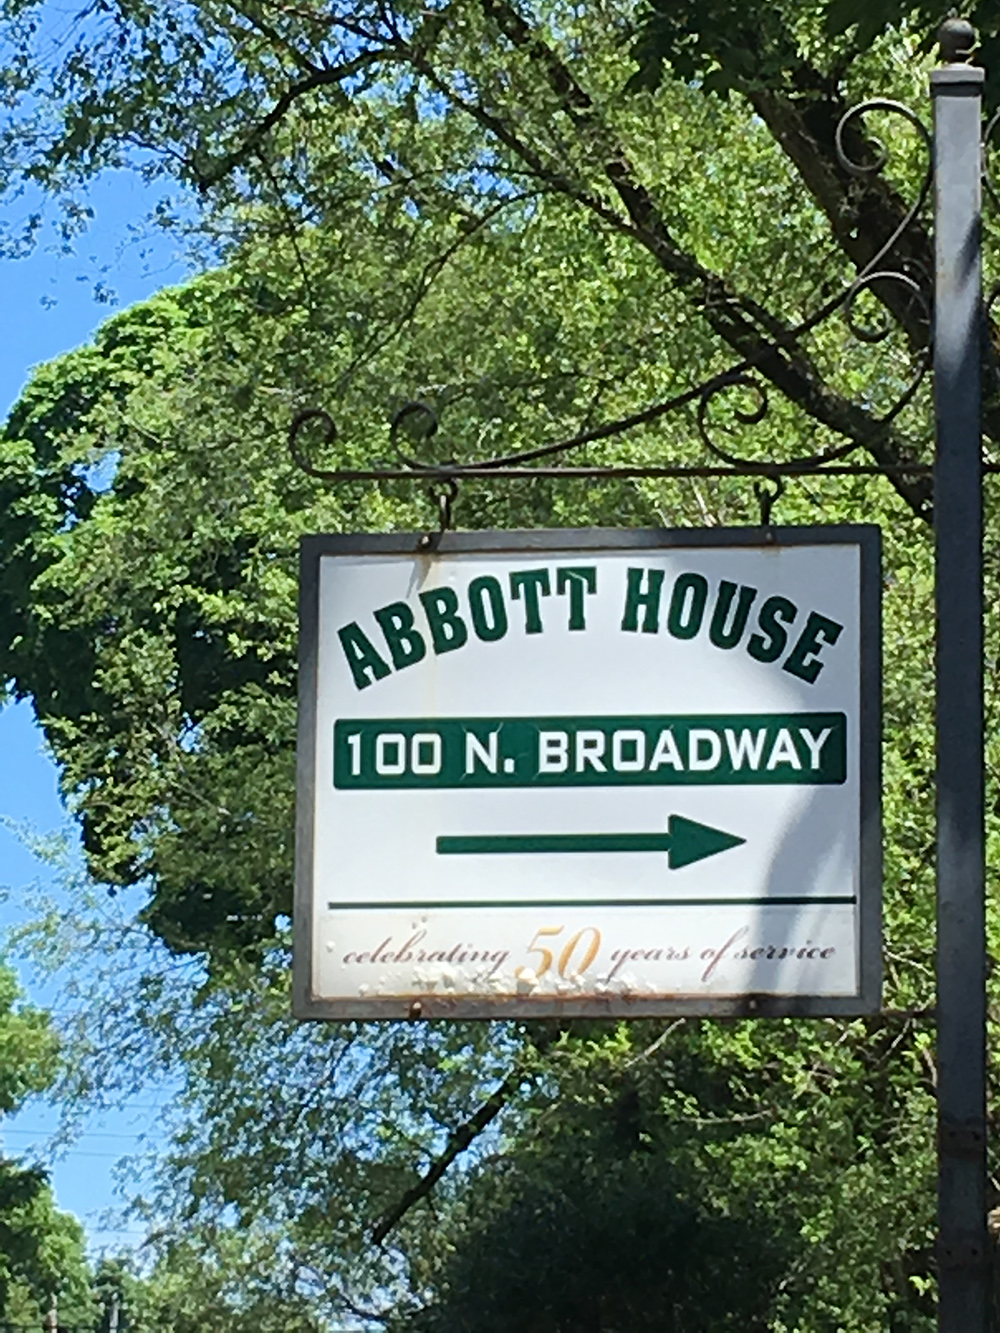 abbott house sign.jpg